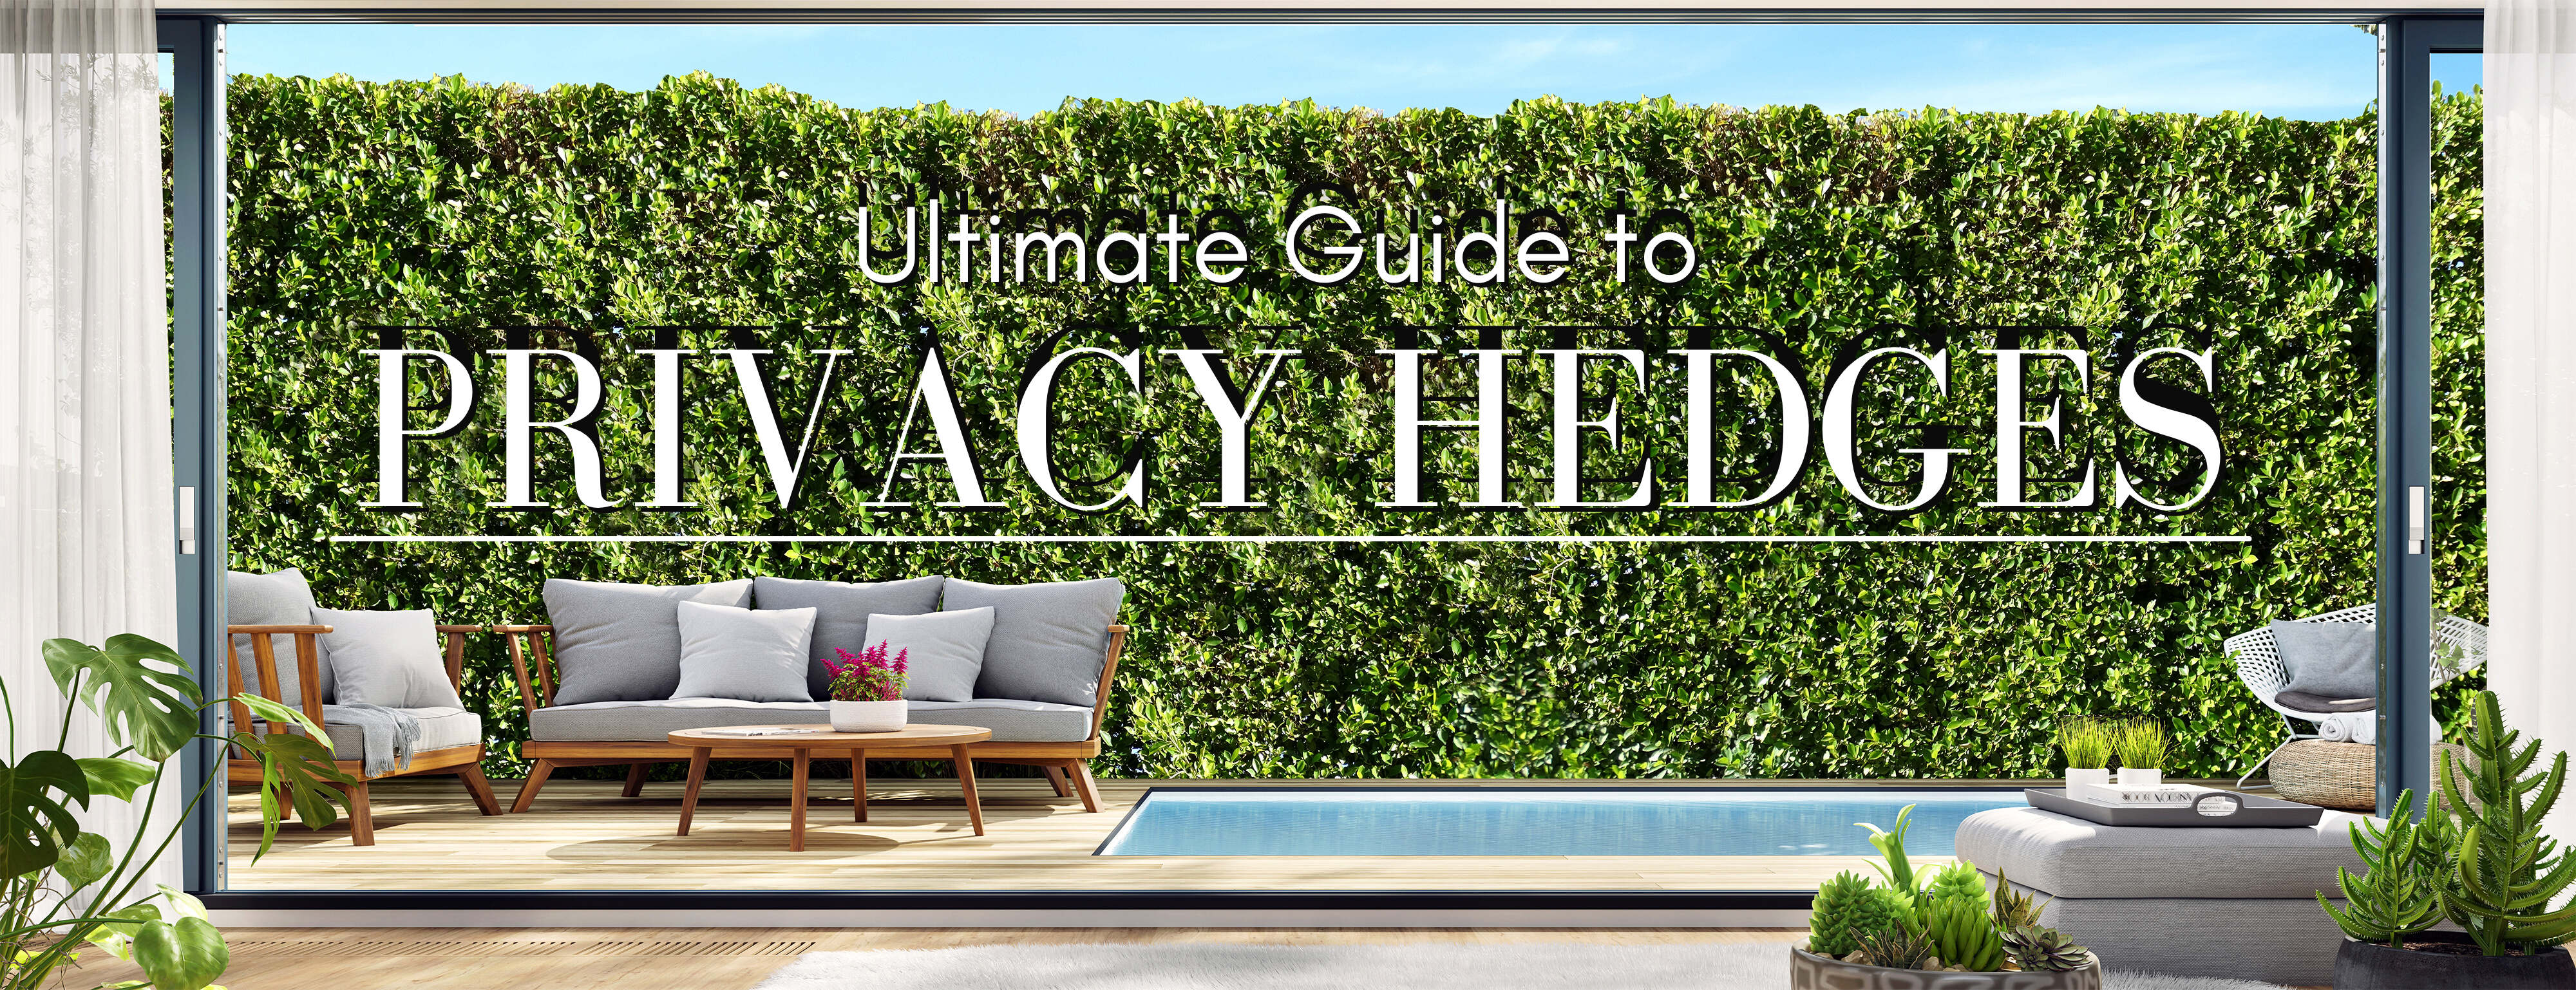 The Ultimate Guide to Privacy Hedges